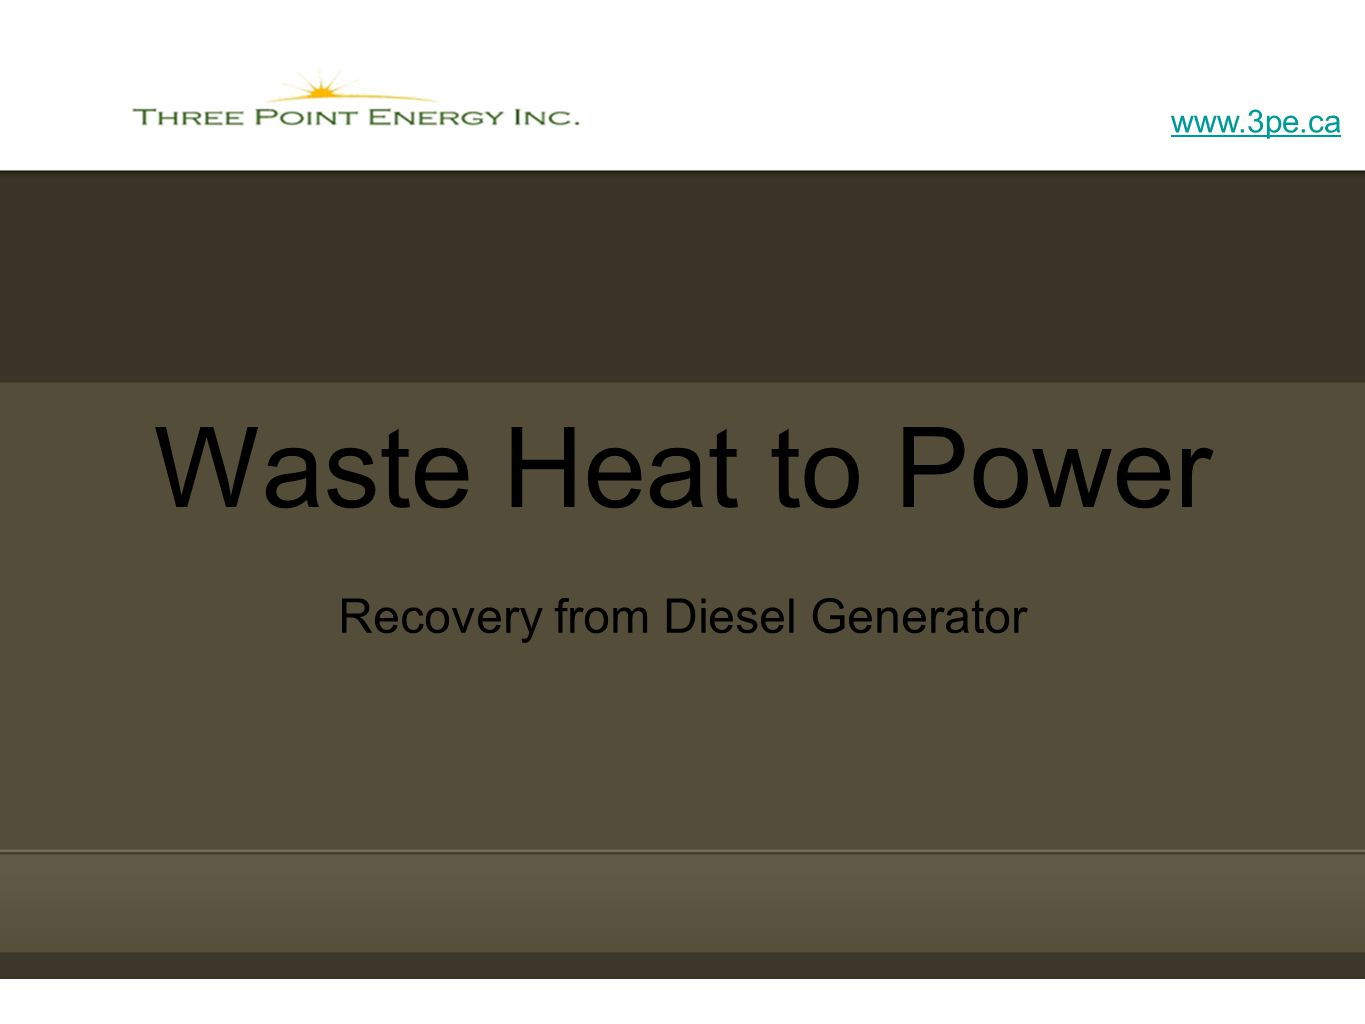 www.3pe.ca Waste Heat to Power Recovery from Diesel Generator